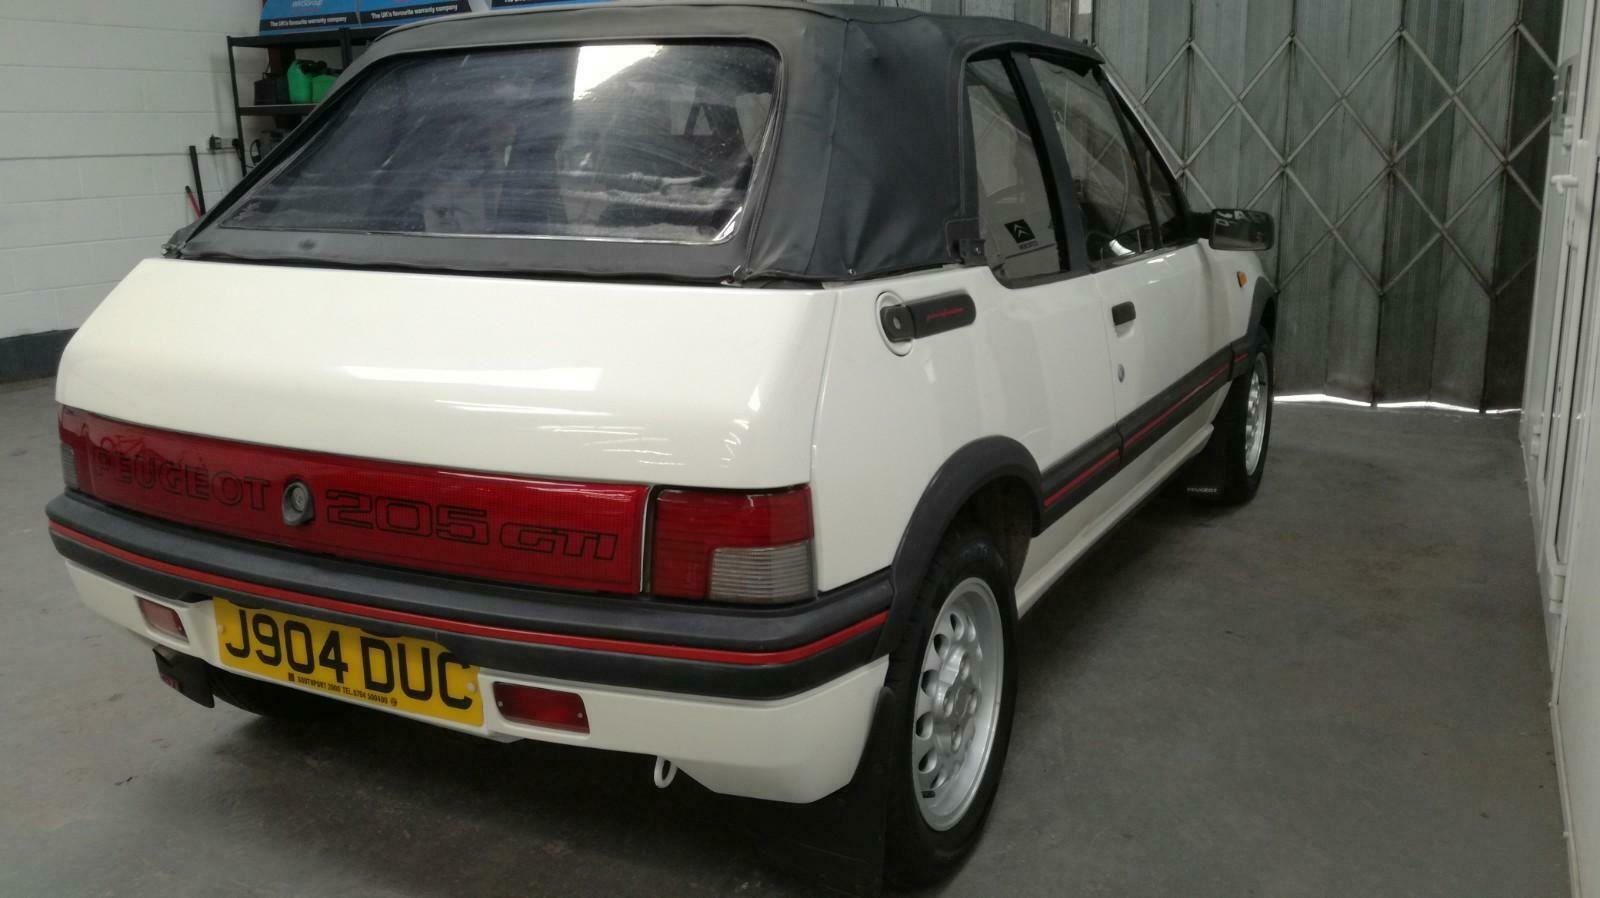 Peugeot 205 CTI 1.6  CABRIOLET 1992 For Sale (picture 4 of 6)